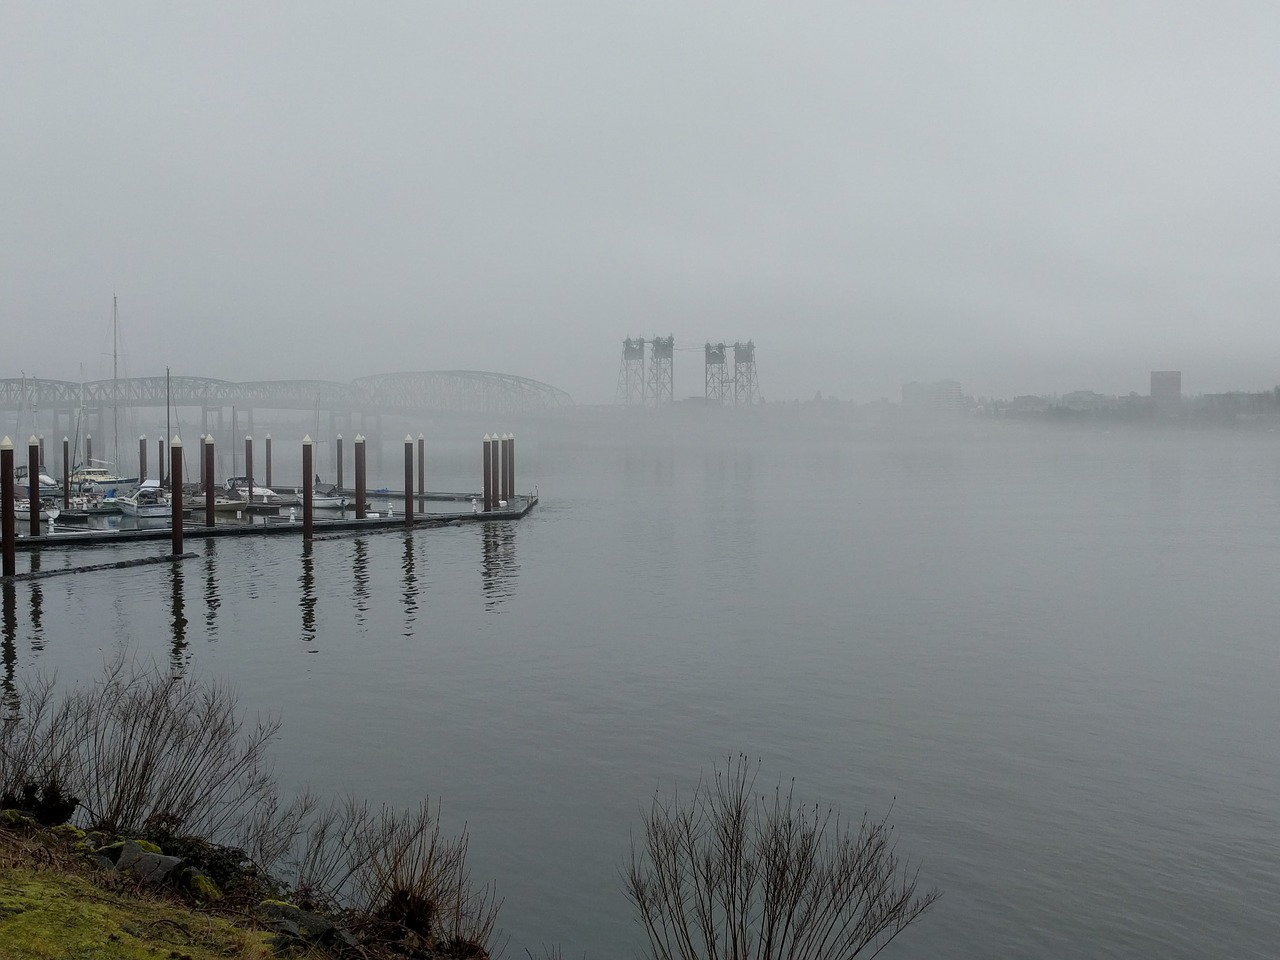 hayden island mist,portland oregon usa,marina,bridge,interstate bridge,oregon,washington,interstate,island,columbia river,fog,sailboats,river,drawbridge,house boats,free pictures, free photos, free images, royalty free, free illustrations, public domain